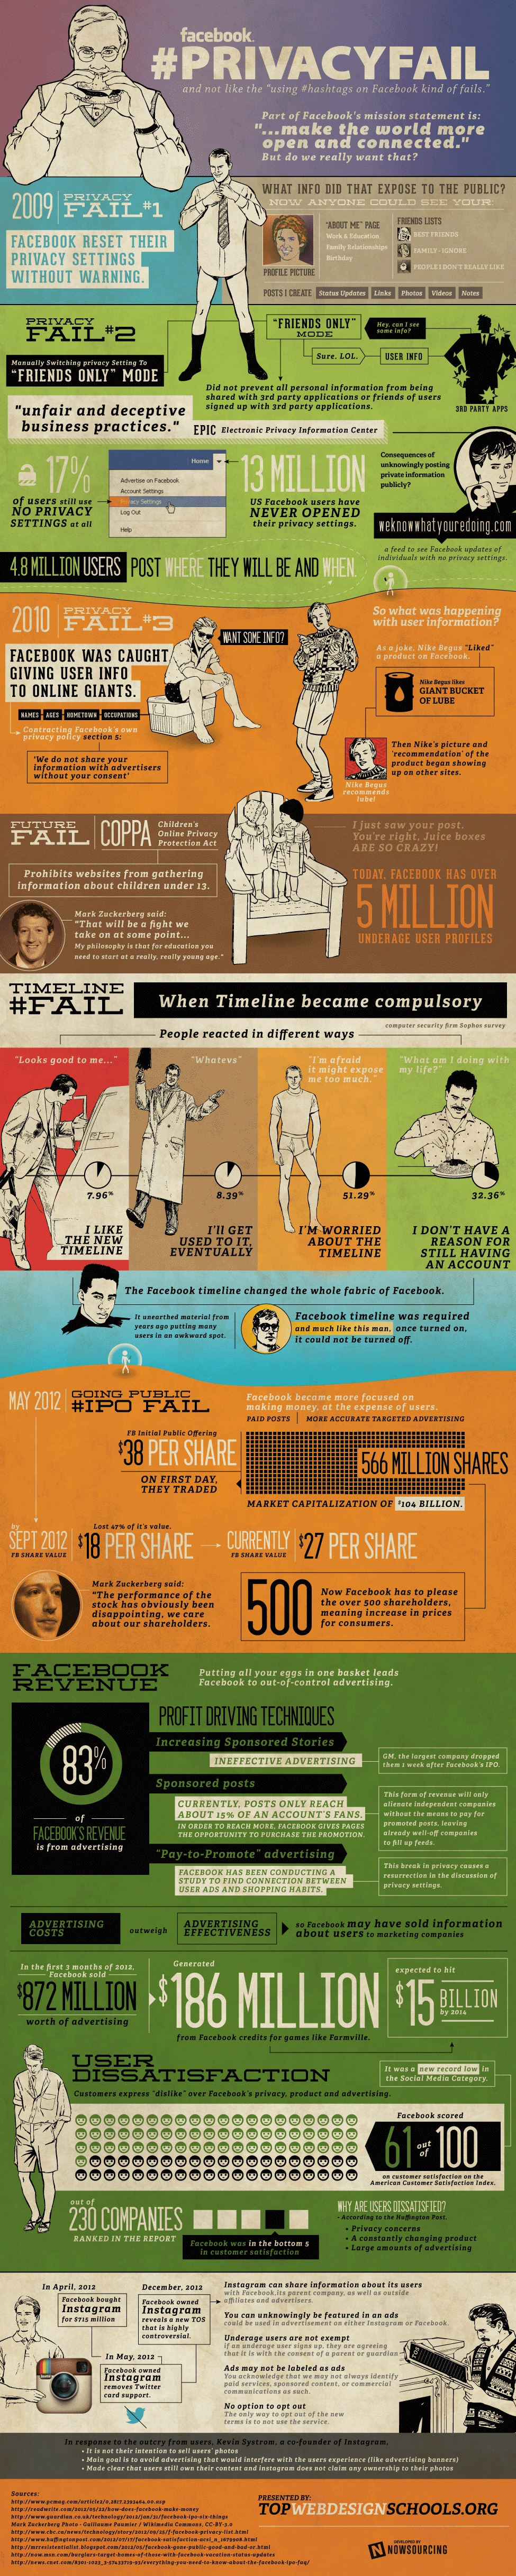 History Of Facebook Privacy Fails & How They Affect Us [Infographic]